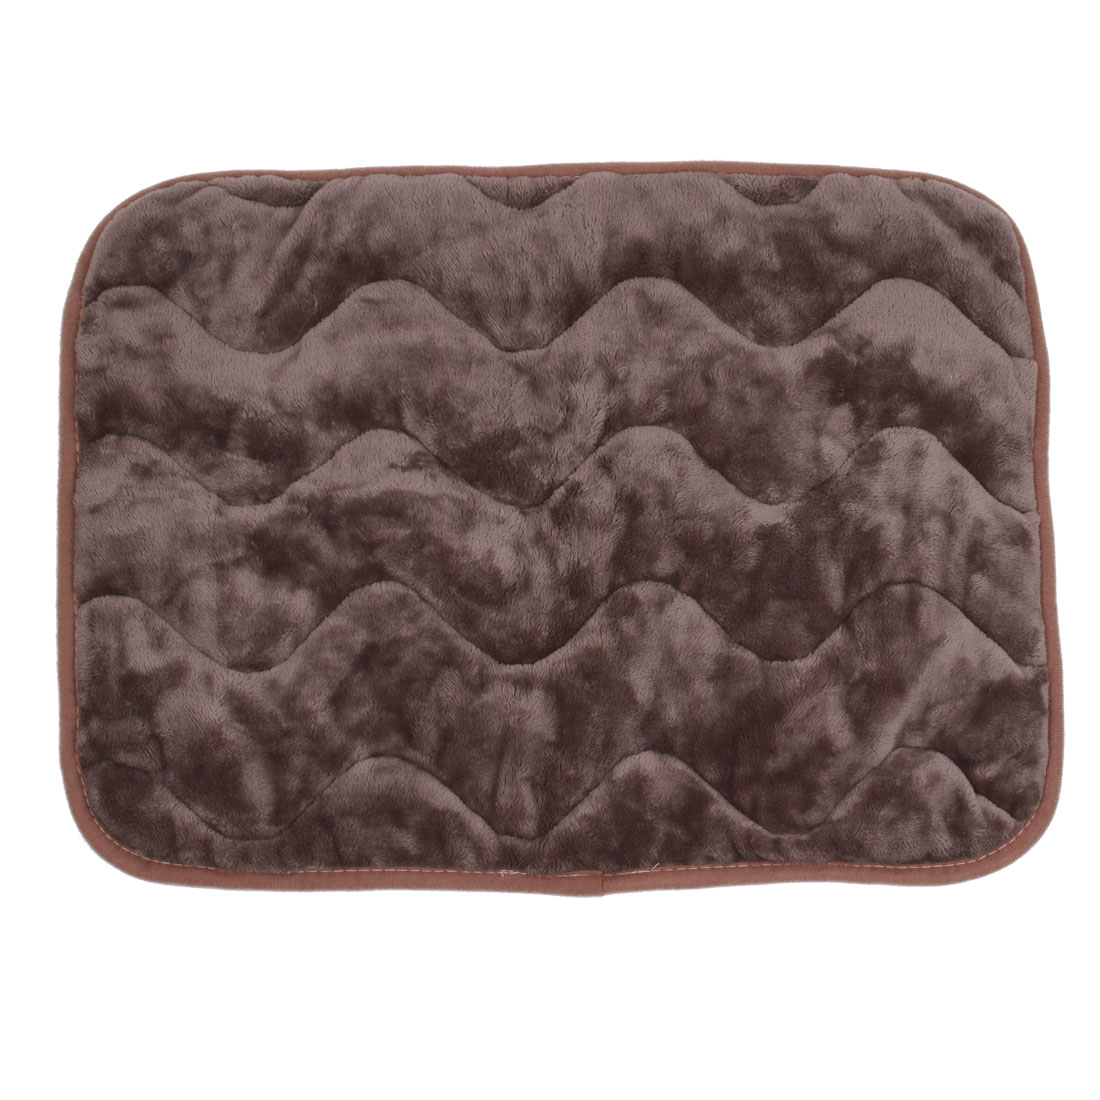 Chocolate Color Coral Fleece Warm Pet Dog Puppy Cushion Pad Mat 55cm x 45cm